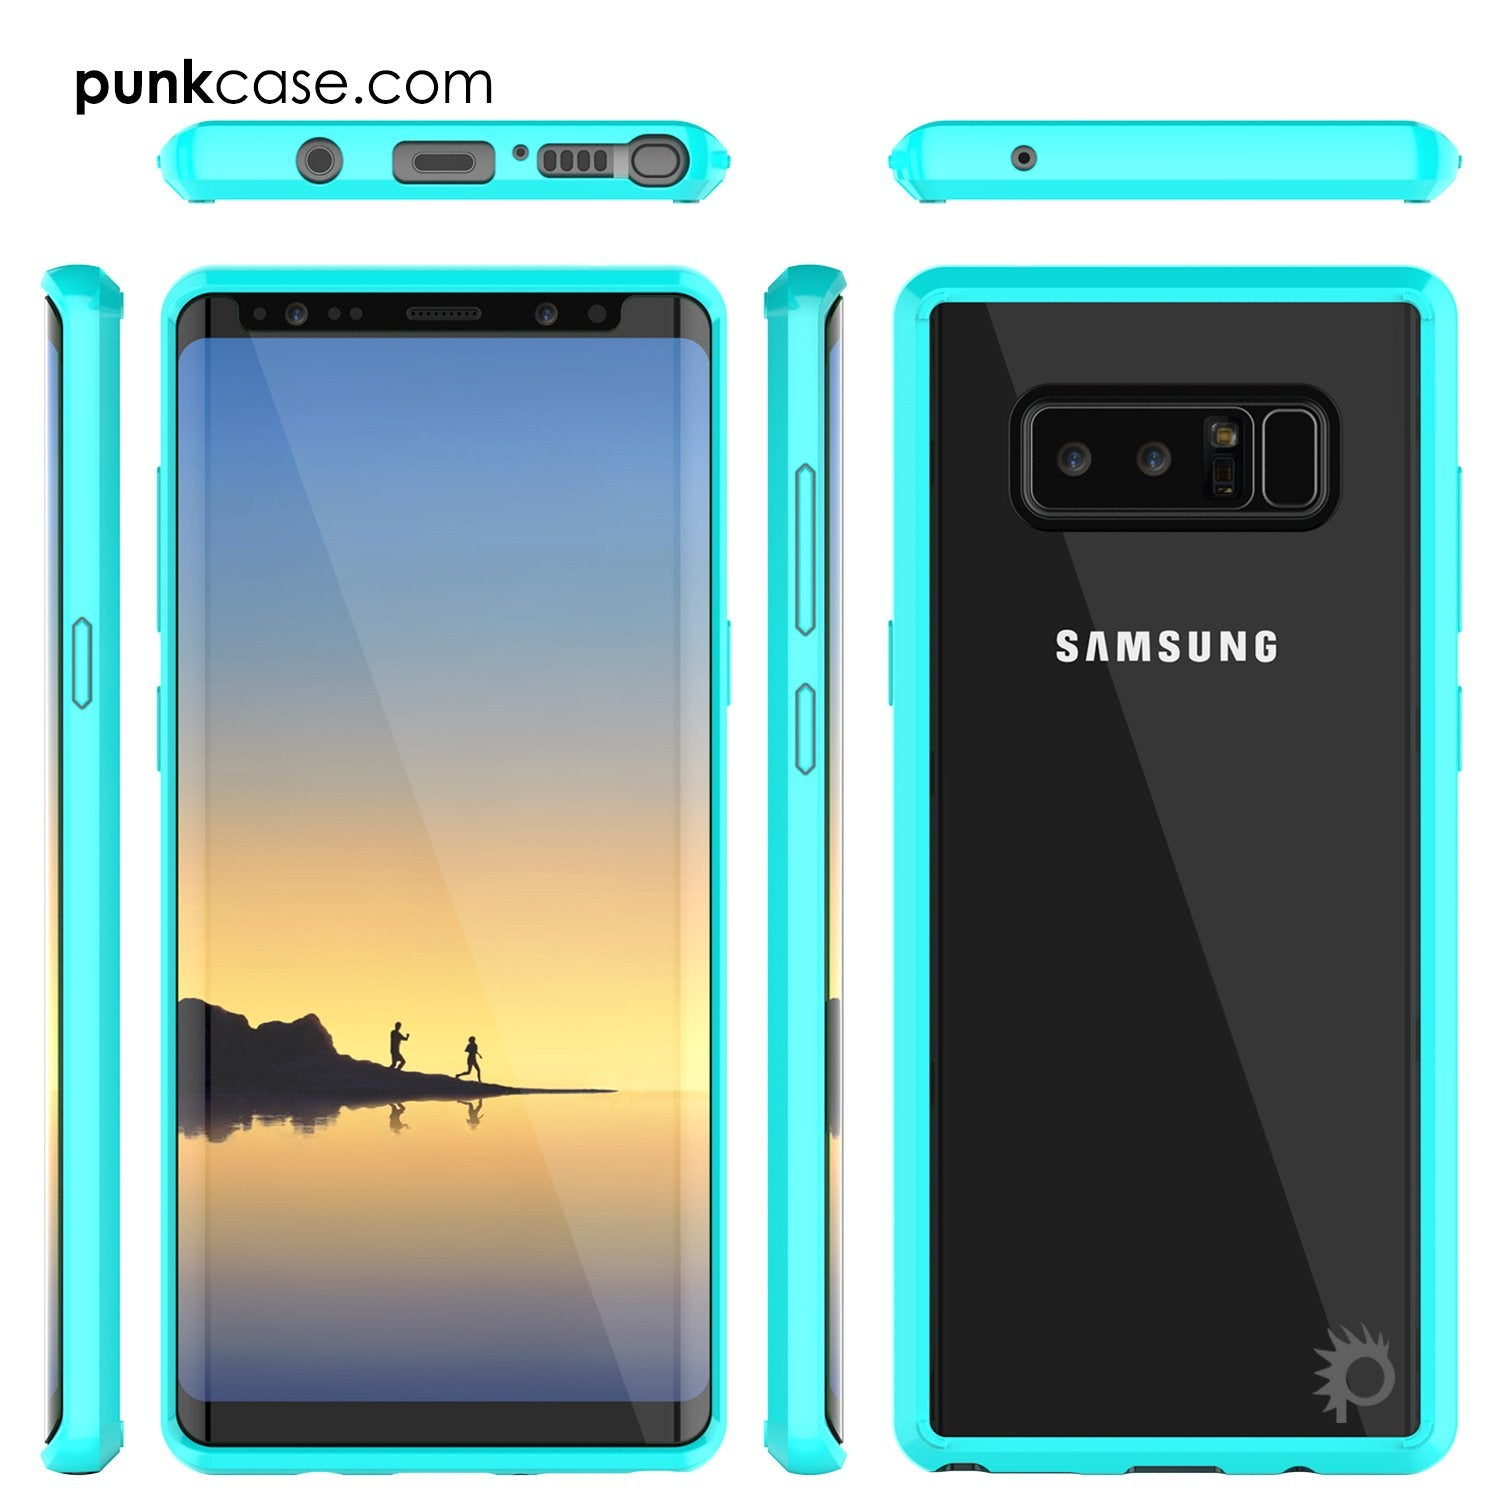 Galaxy Note 8 Case, PUNKcase [LUCID 2.0 Series] [Slim Fit] Armor Cover w/Integrated Anti-Shock System & PUNKSHIELD Screen Protector [Teal]